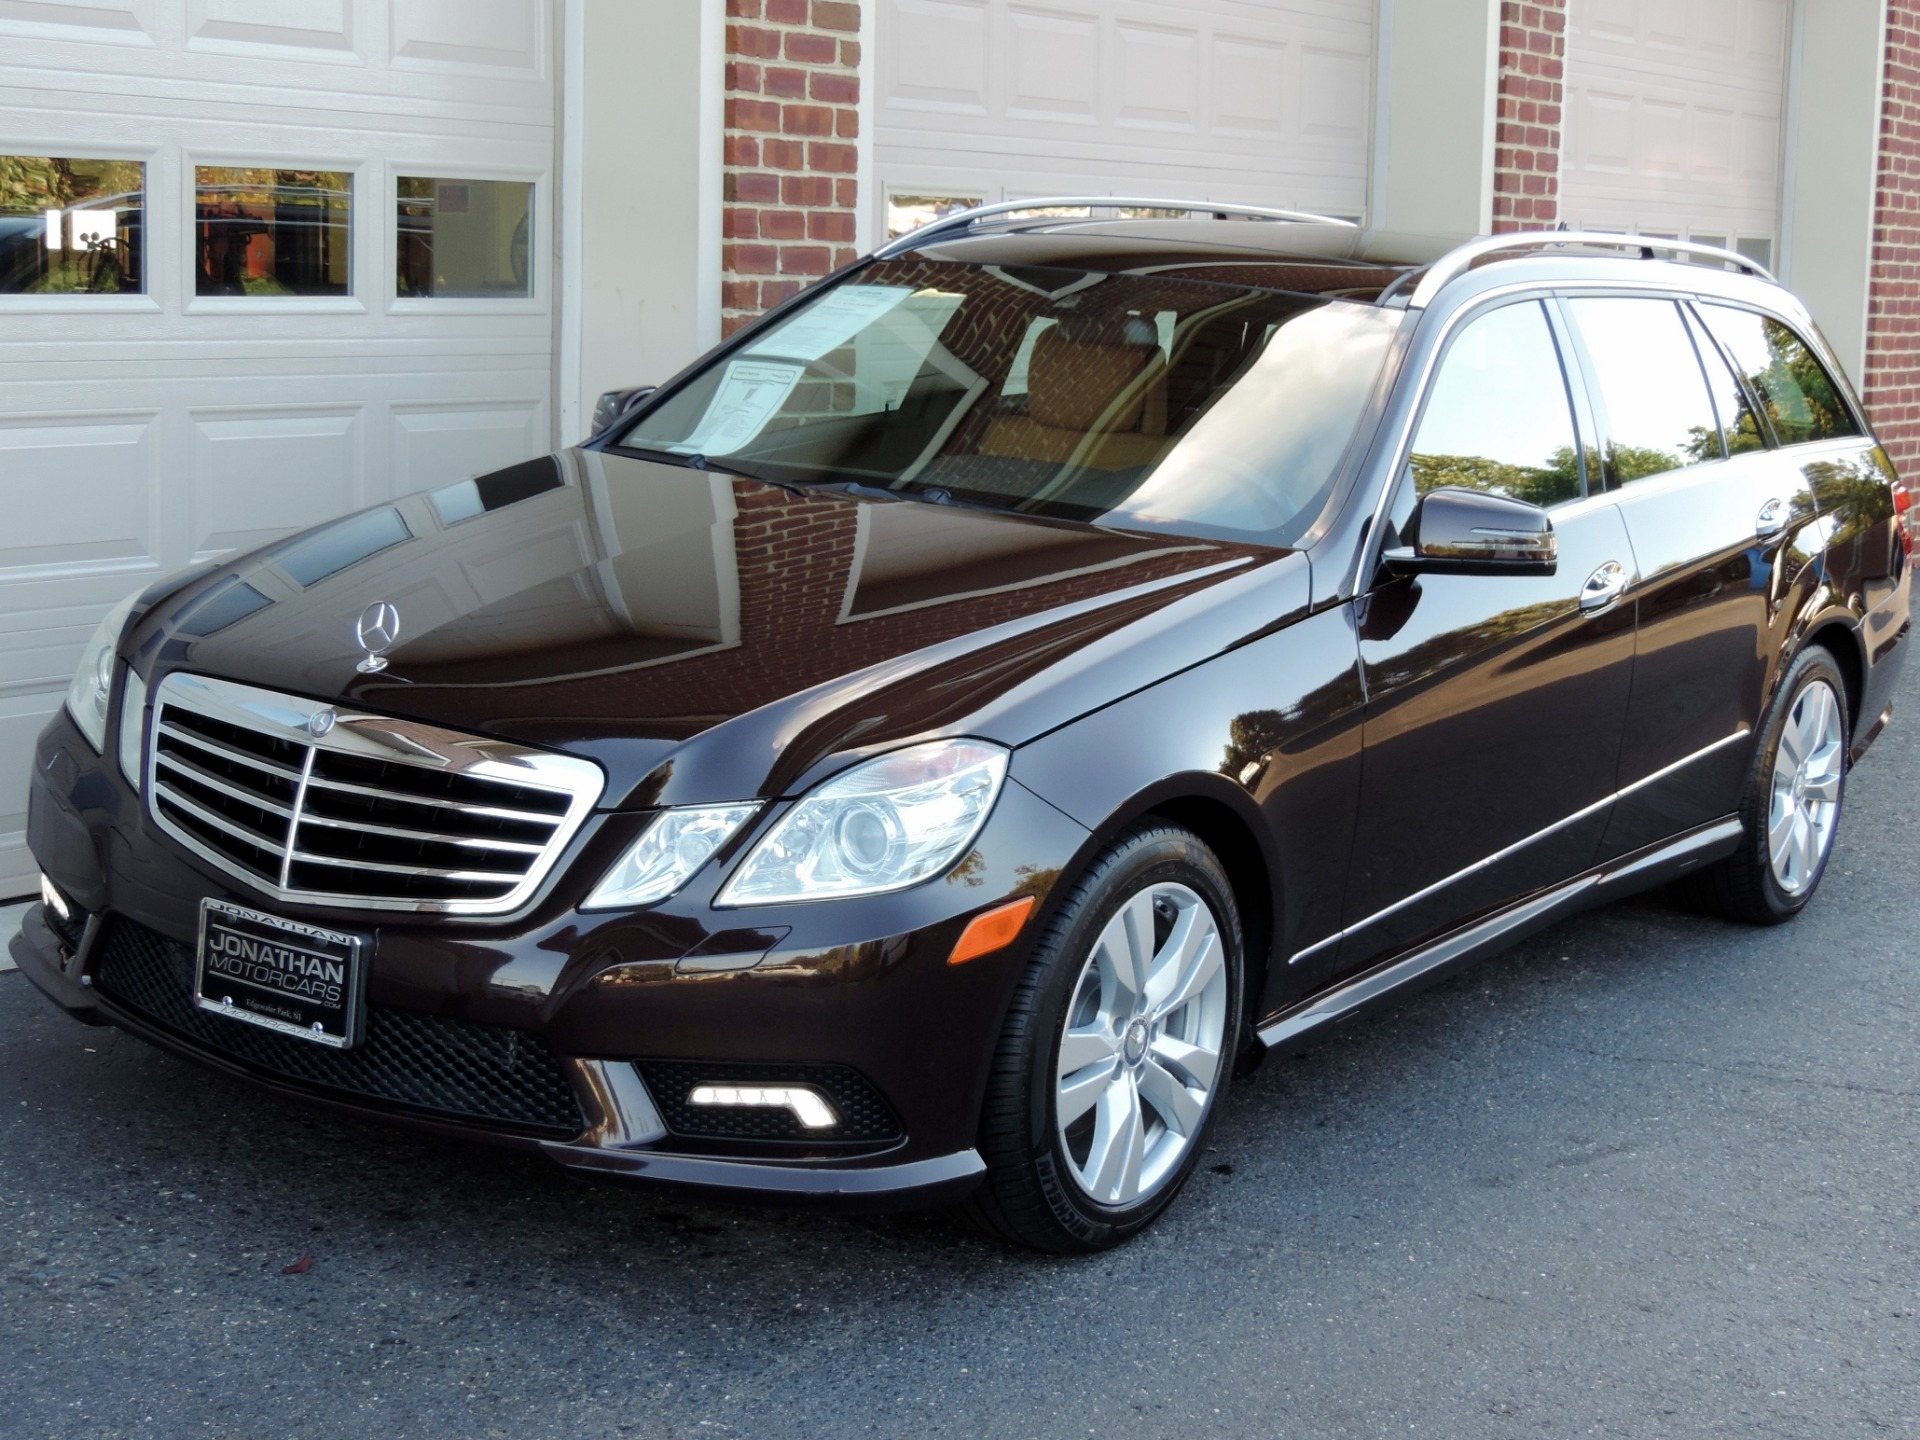 2011 mercedes benz e class e 350 4matic sport wagon stock 226484 for sale near edgewater park. Black Bedroom Furniture Sets. Home Design Ideas